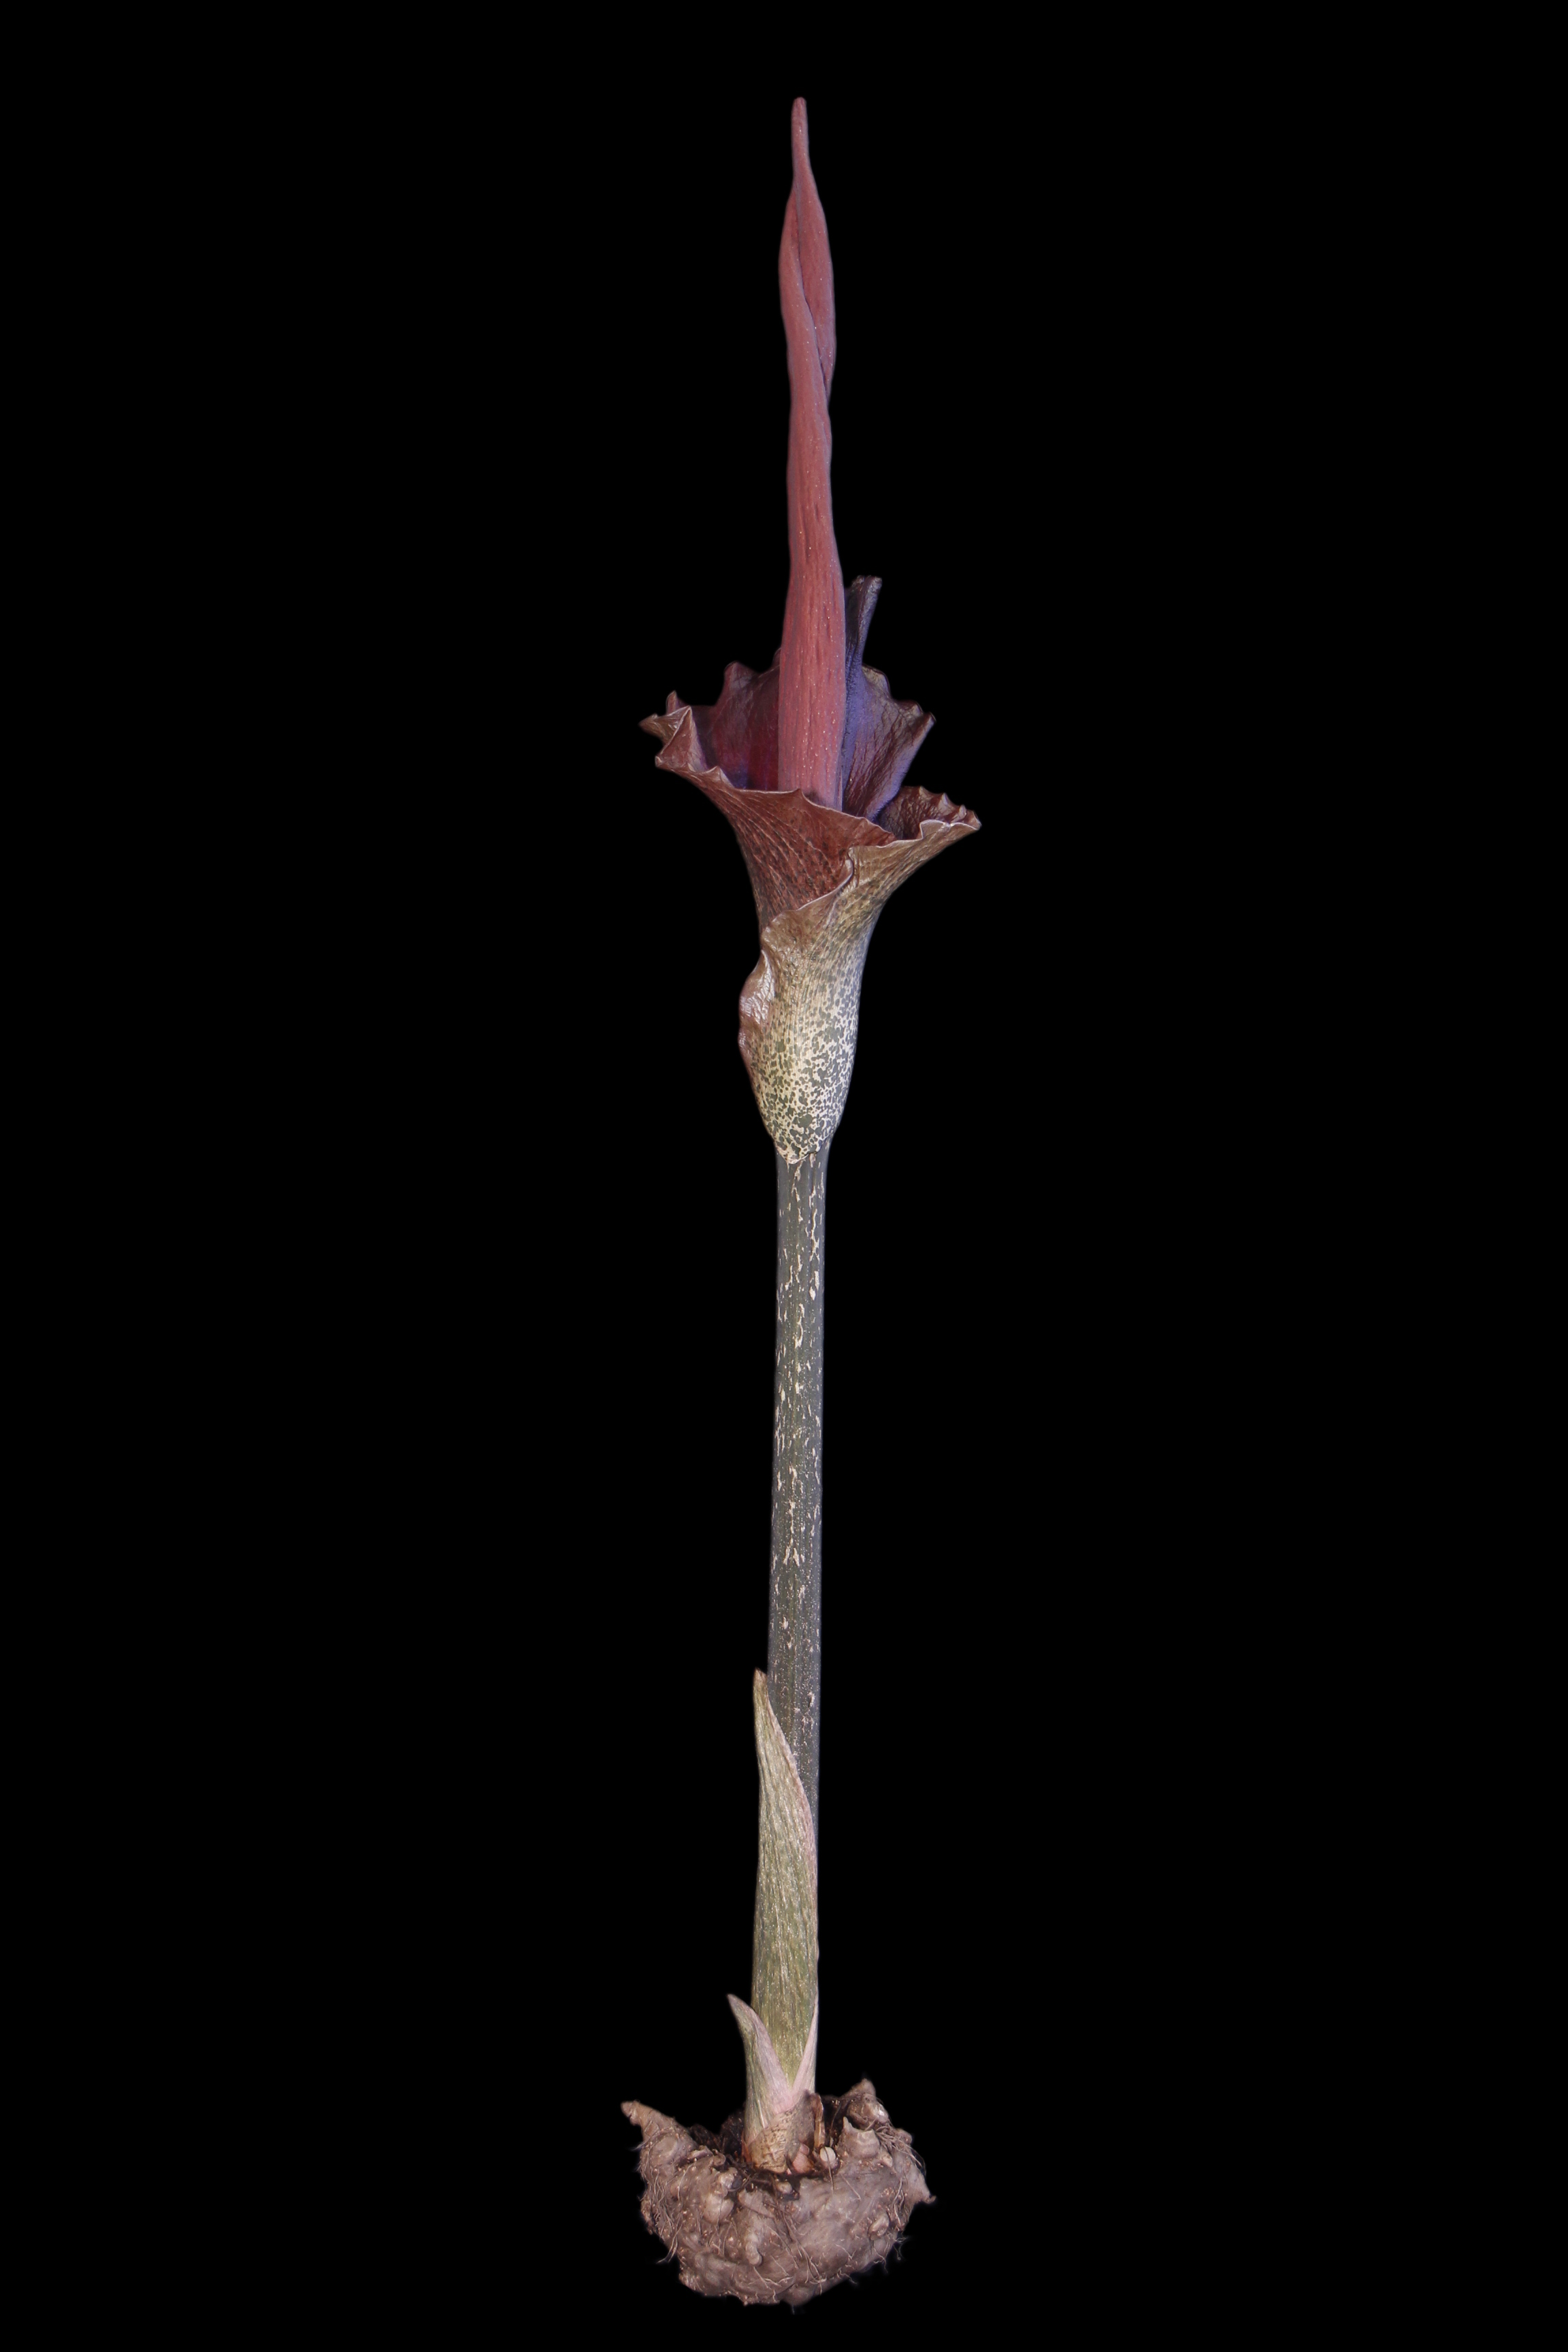 Amorphophallus konjac with corm